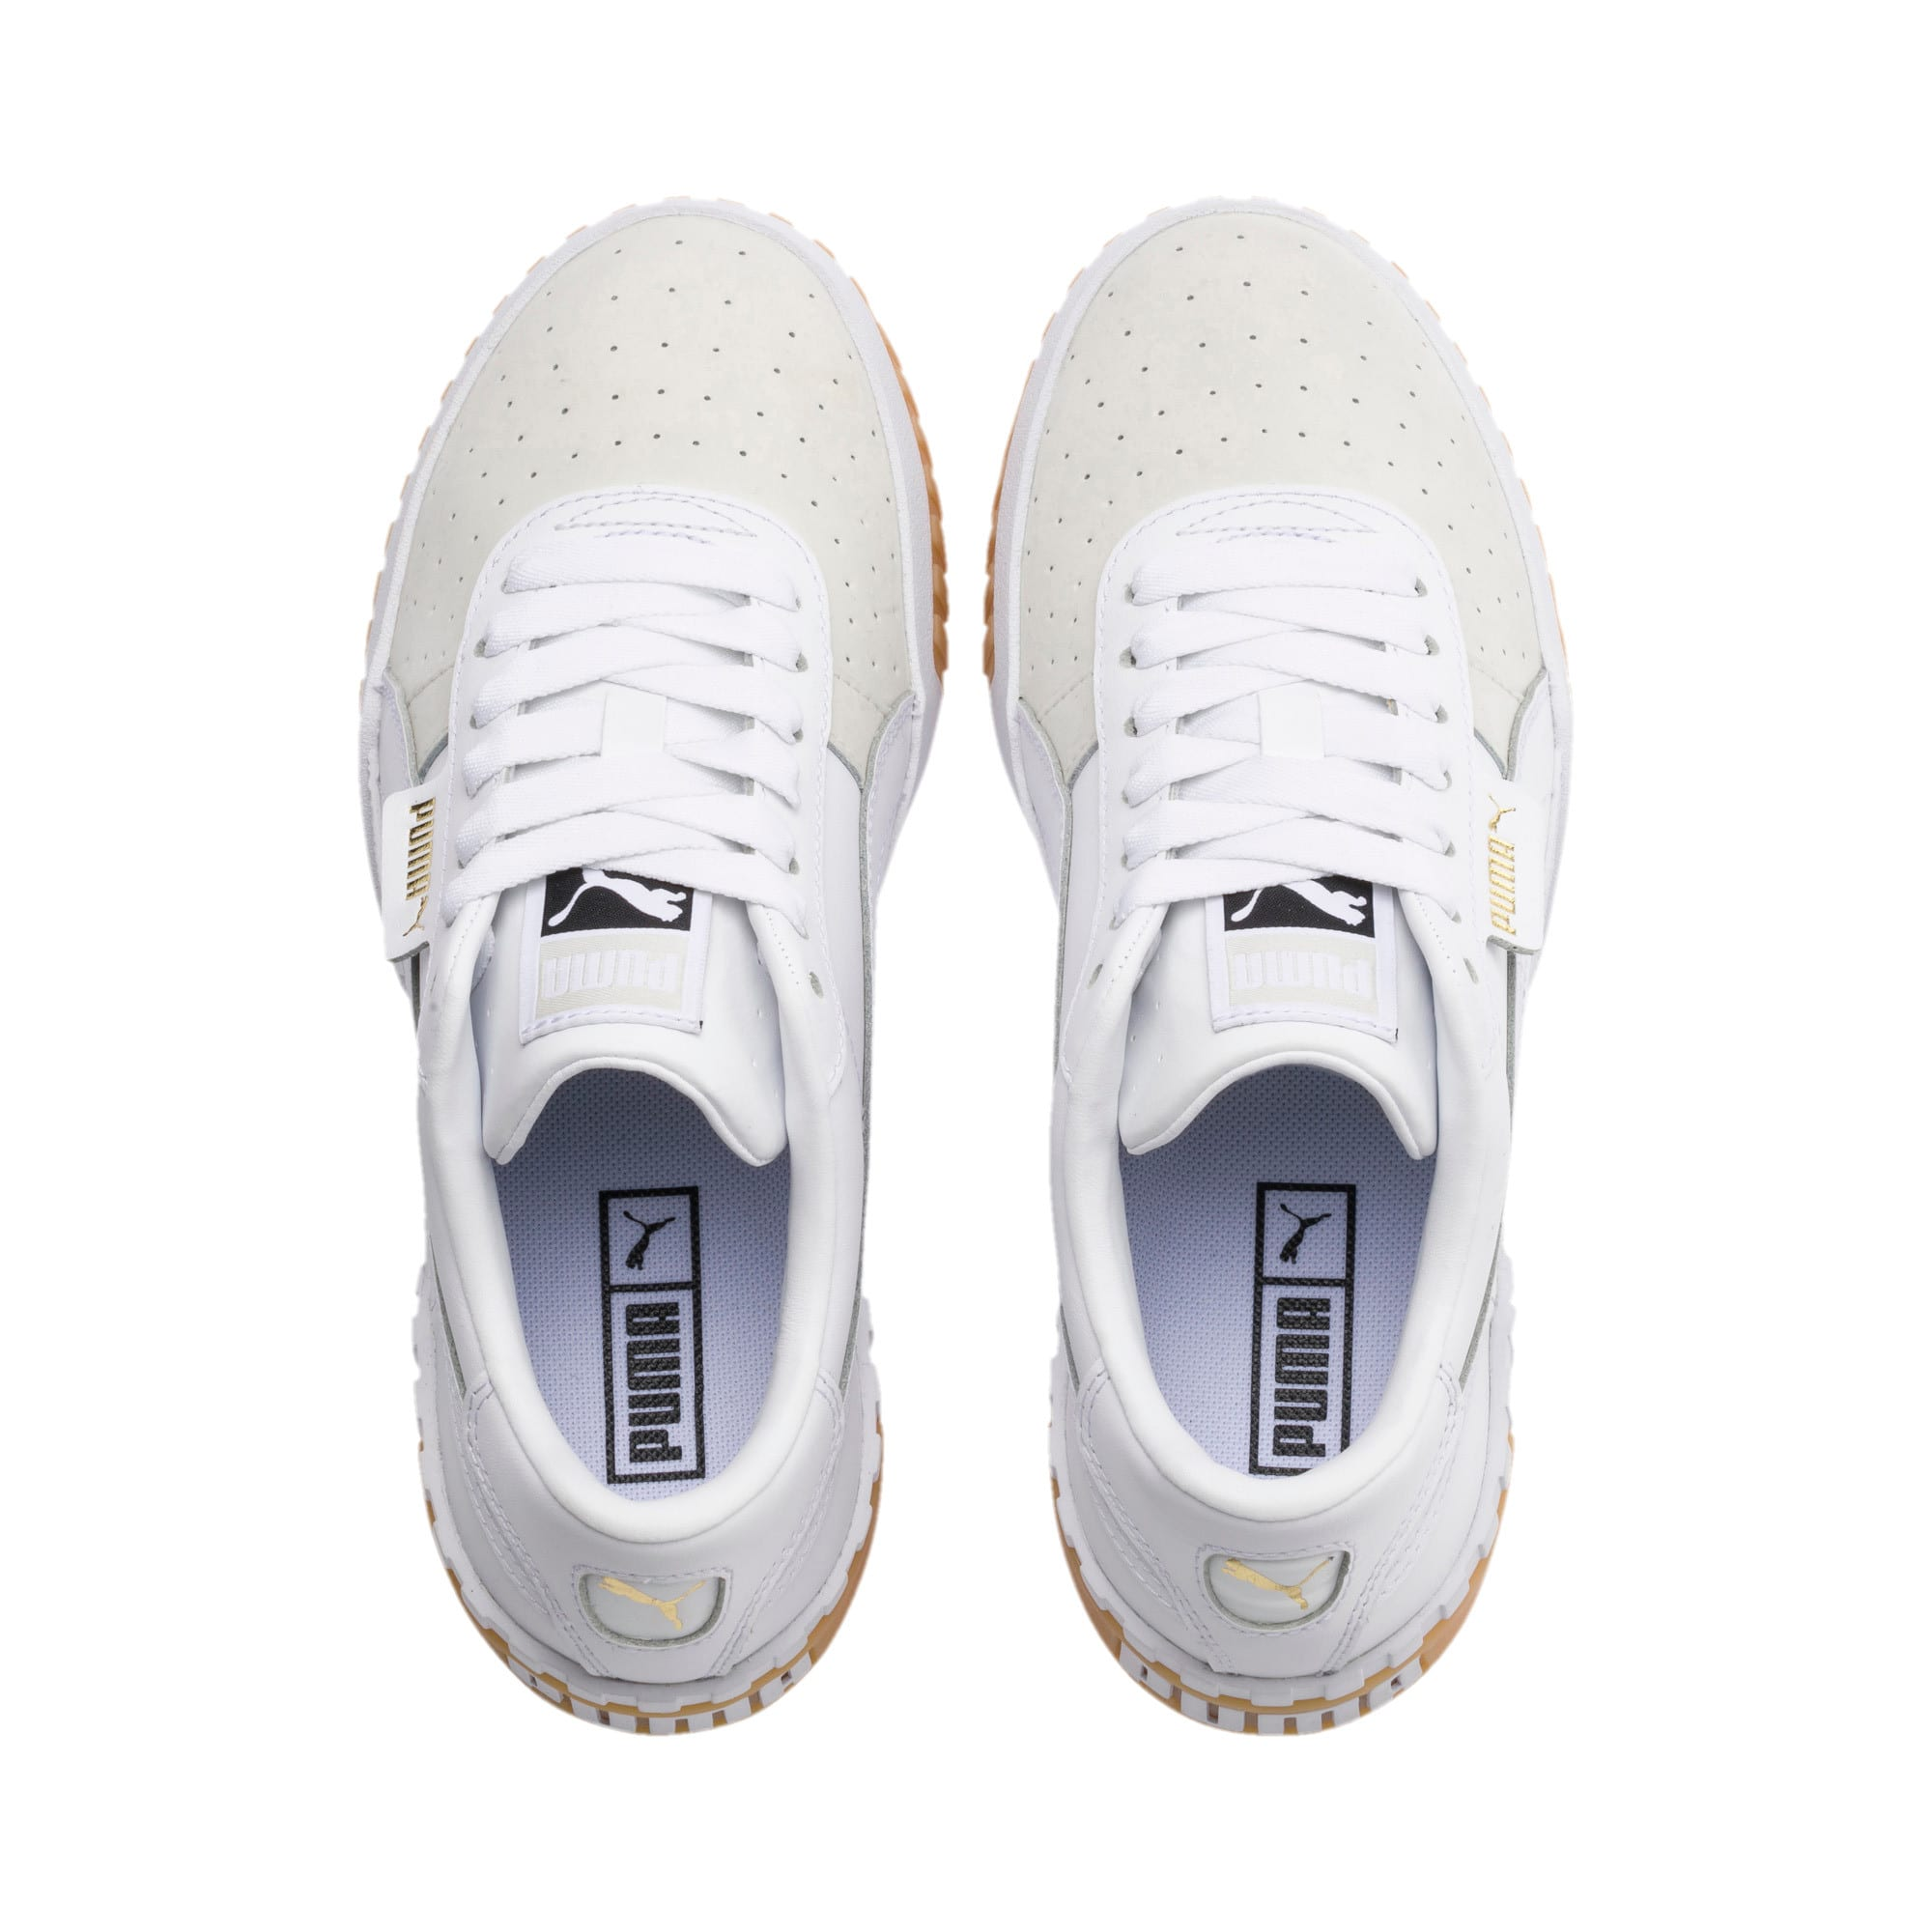 Thumbnail 6 of Zapatillas de mujer Cali Exotic, Puma White-Puma White, medium